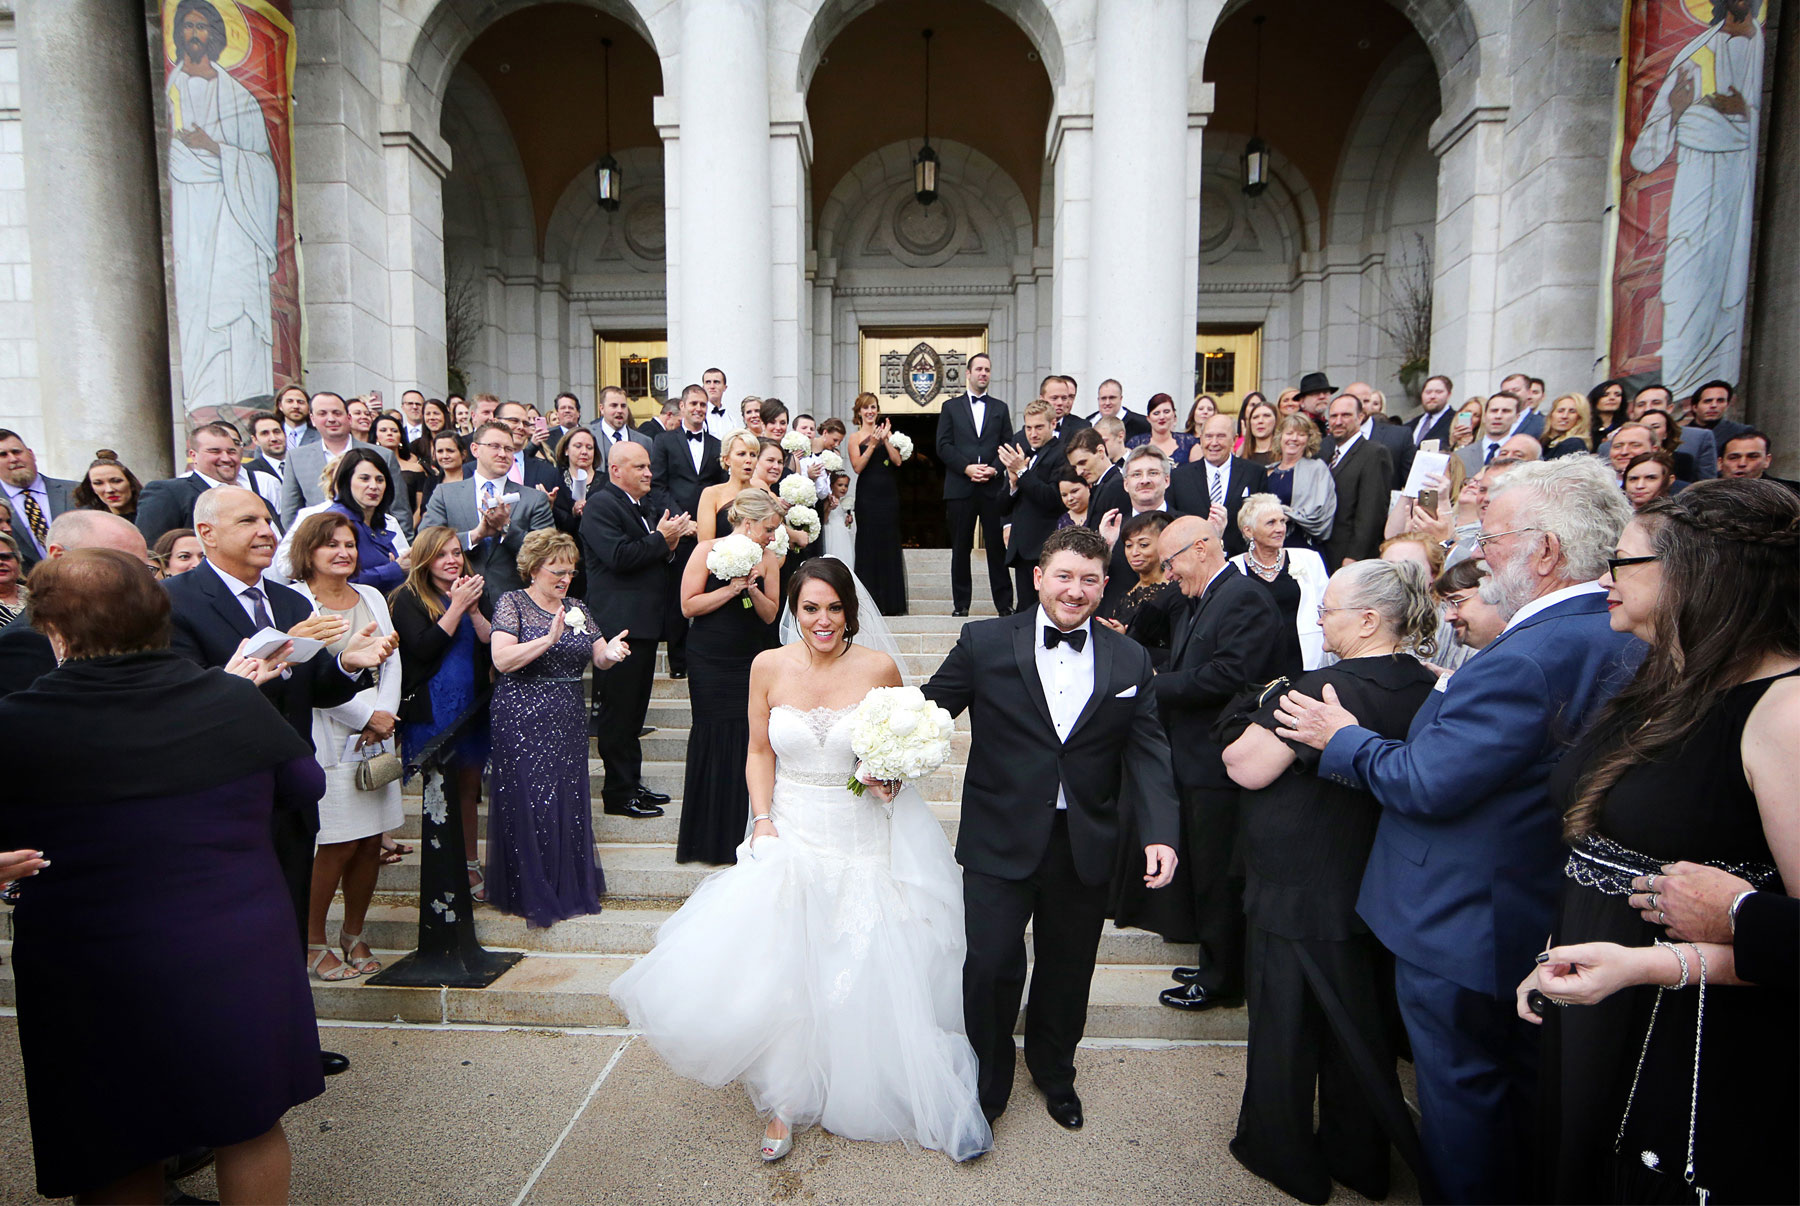 12-Minneapolis-Minnesota-Wedding-Photography-by-Vick-Photography-Downtown-Basilica-of-St-Marys-Church-Exit-Ceremony-Megan-and-Andrew.jpg